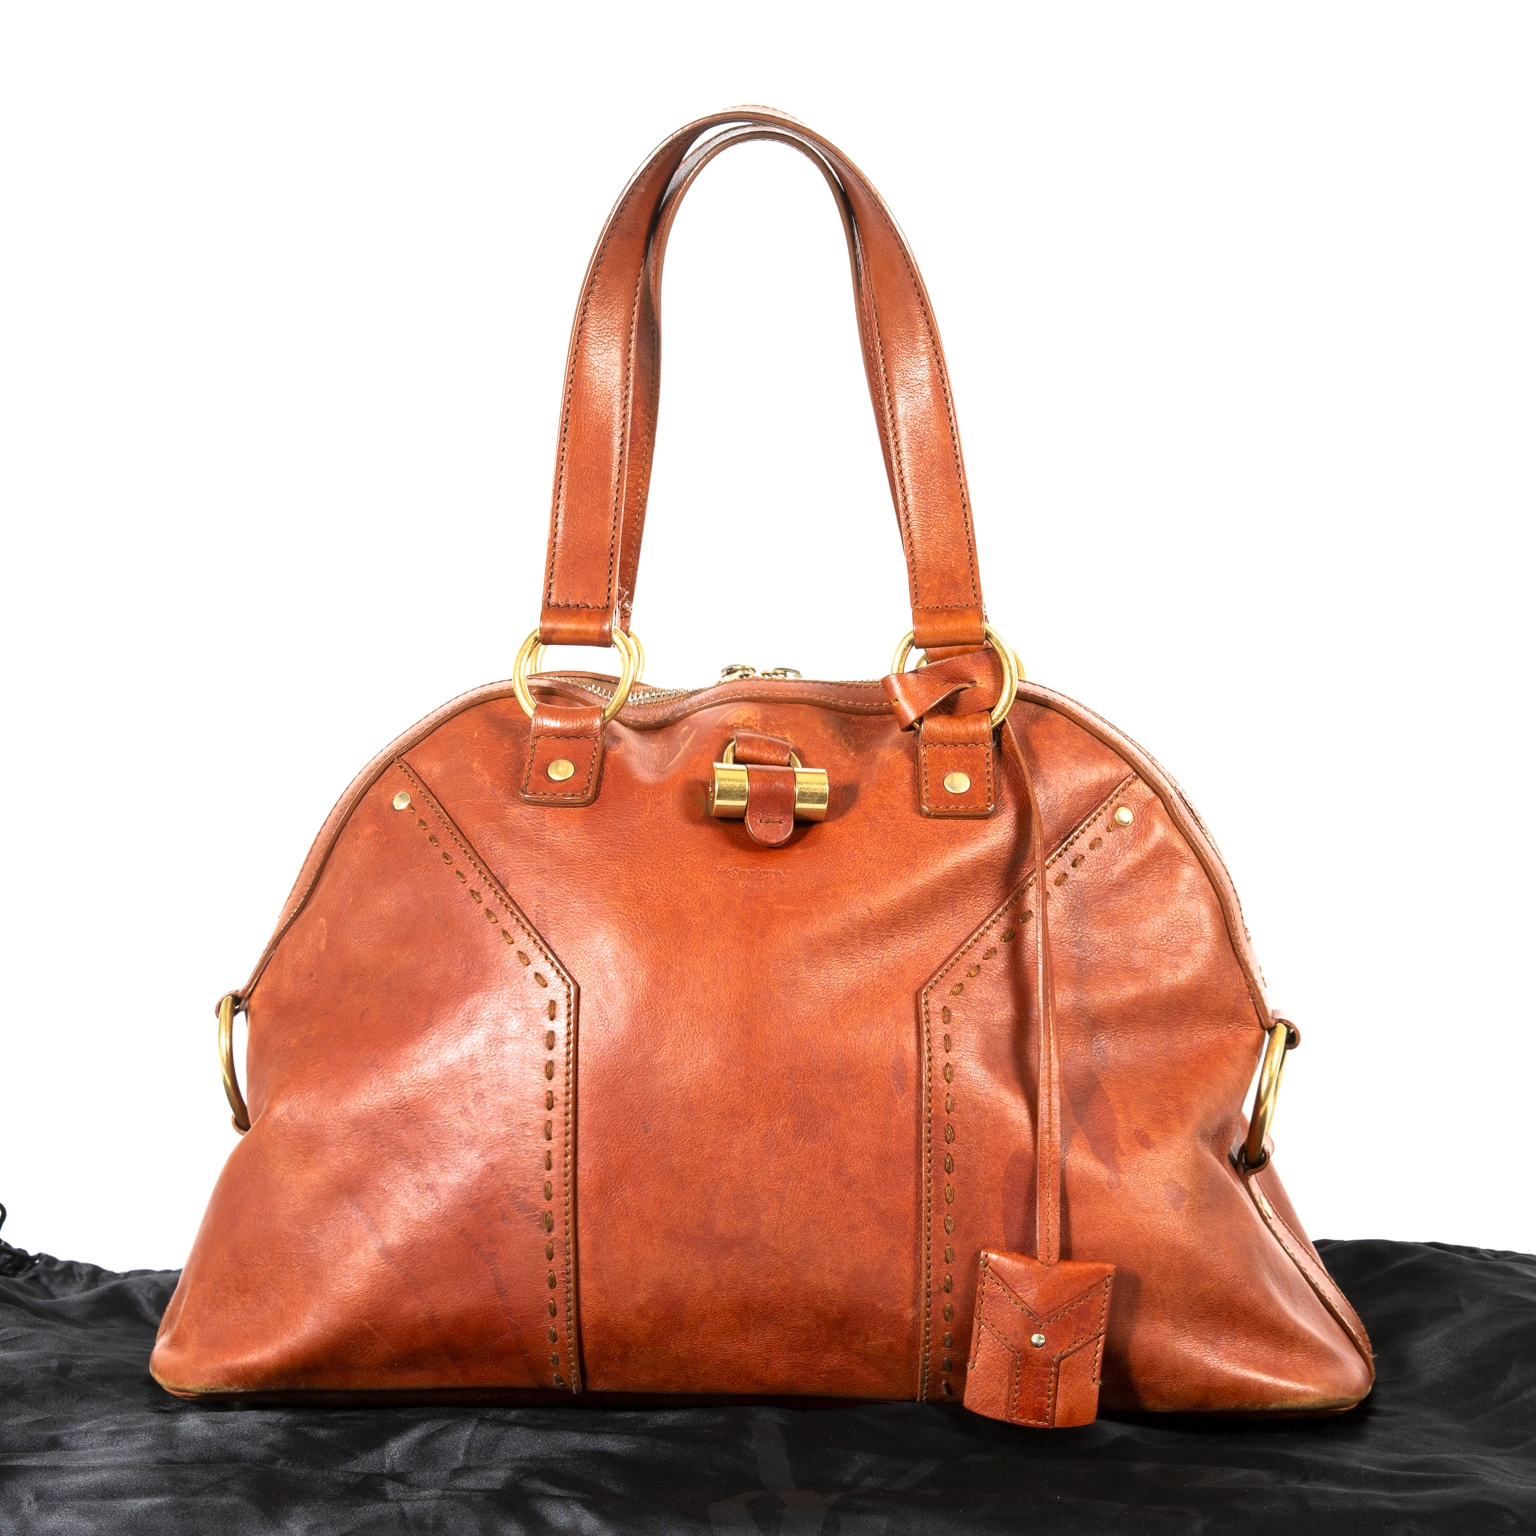 Yves Saint Laurent Muse One Bourbon Leather Bag now for sale at labellov vintage fashion webshop belgium